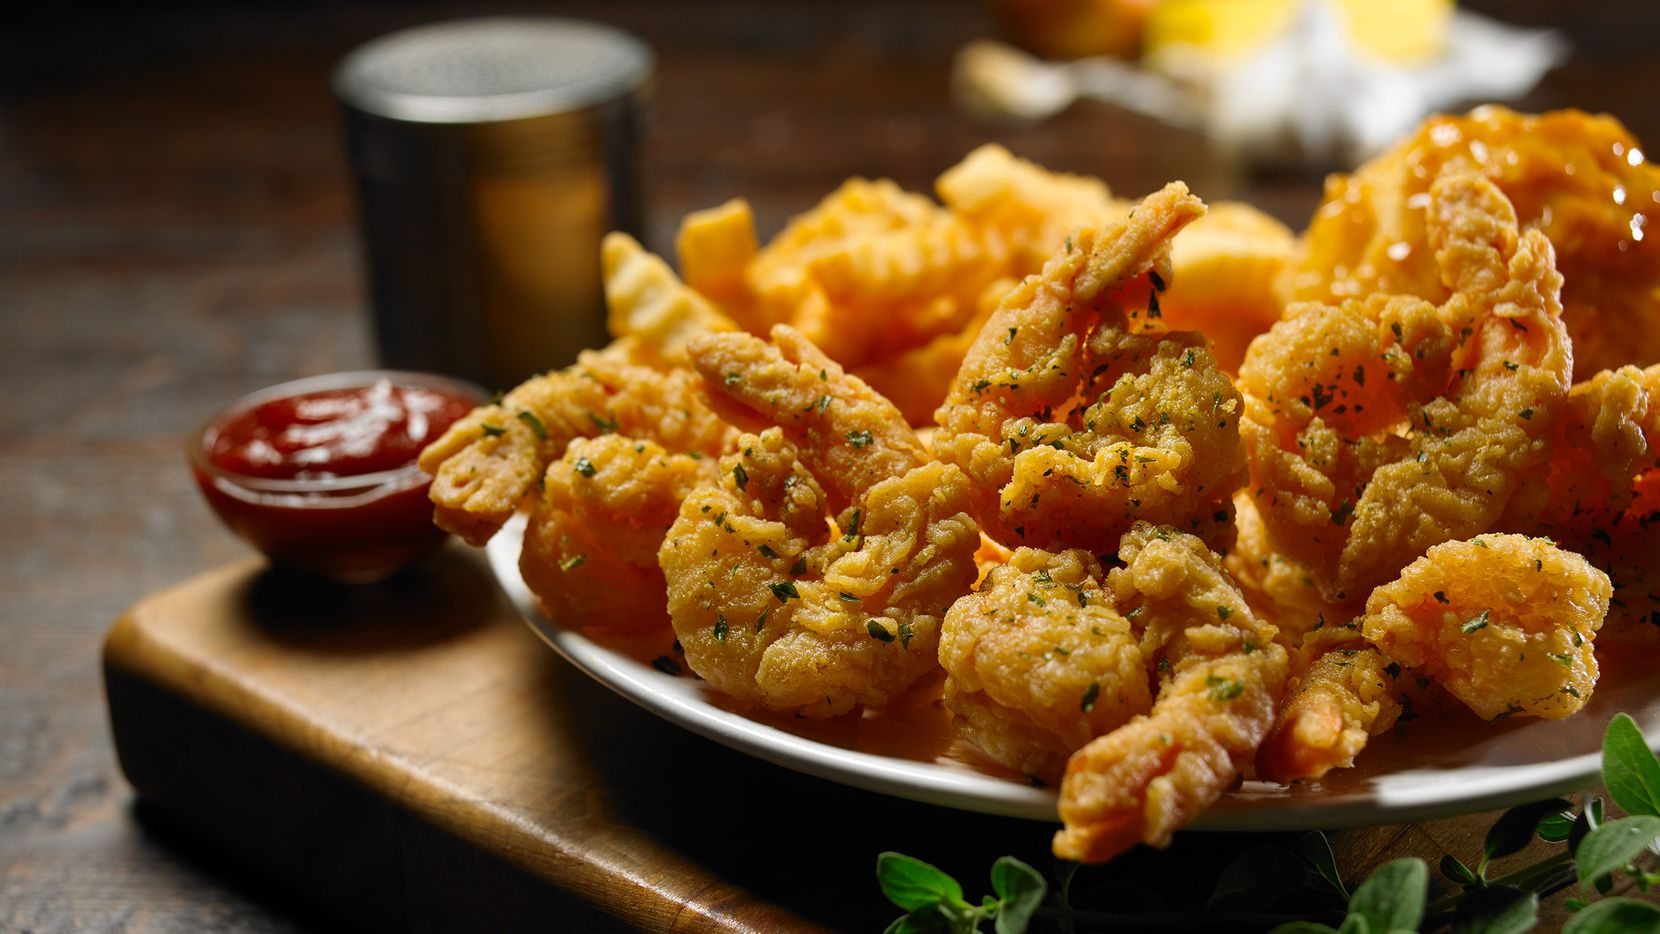 Church's Chicken is debuting a new garlic-shrimp platter during Lent in North Texas in 2019. Catholics will find it easy to eat meat-free on Fridays here.